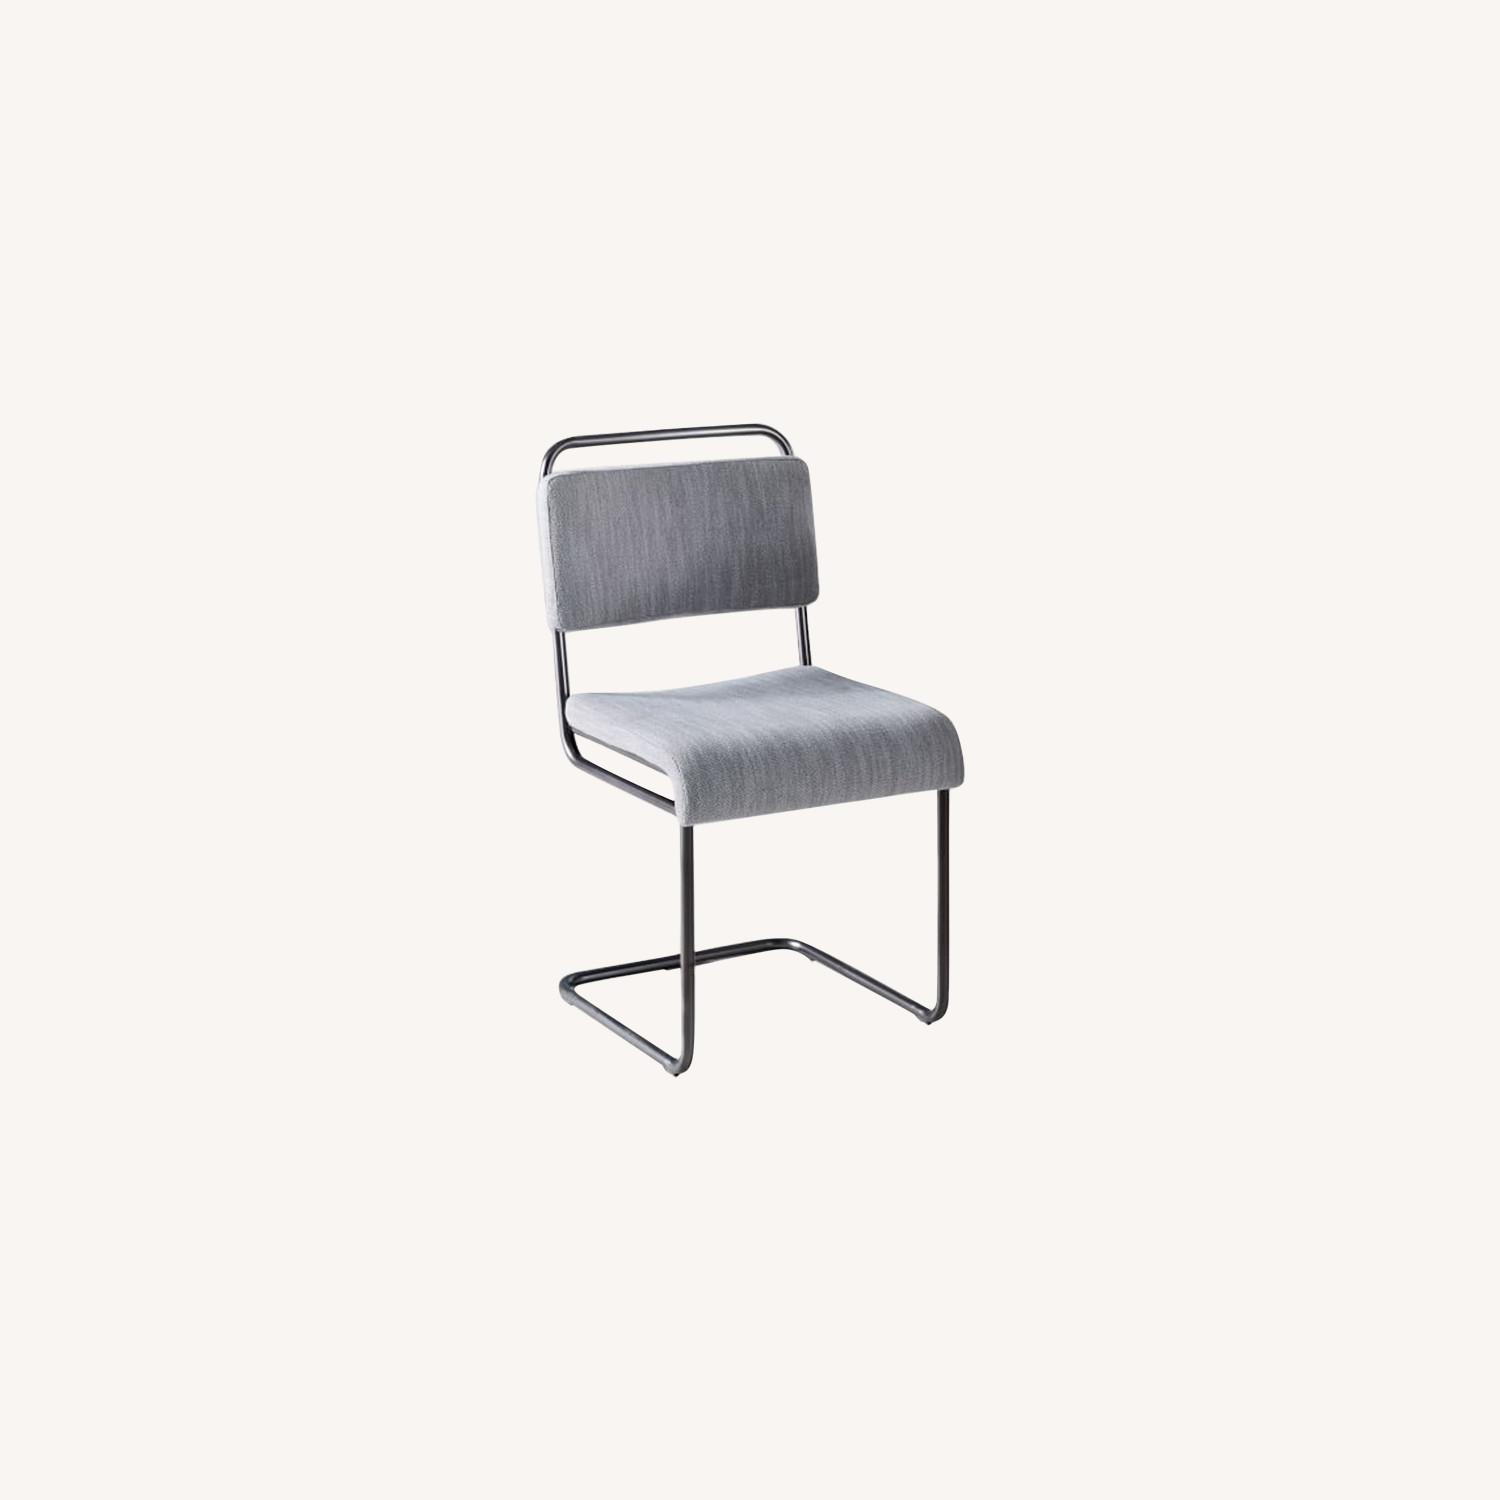 West Elm Industrial Cantilever Upholstered Chair - image-0